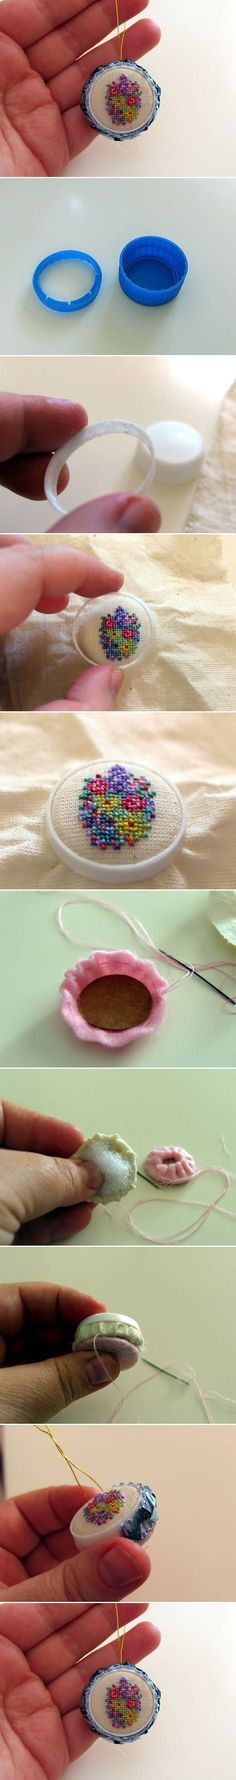 DIY Bottle Cap Ornament DIY Bottle Cap Ornament com tampinha de garrafa de água ou refrigerante.